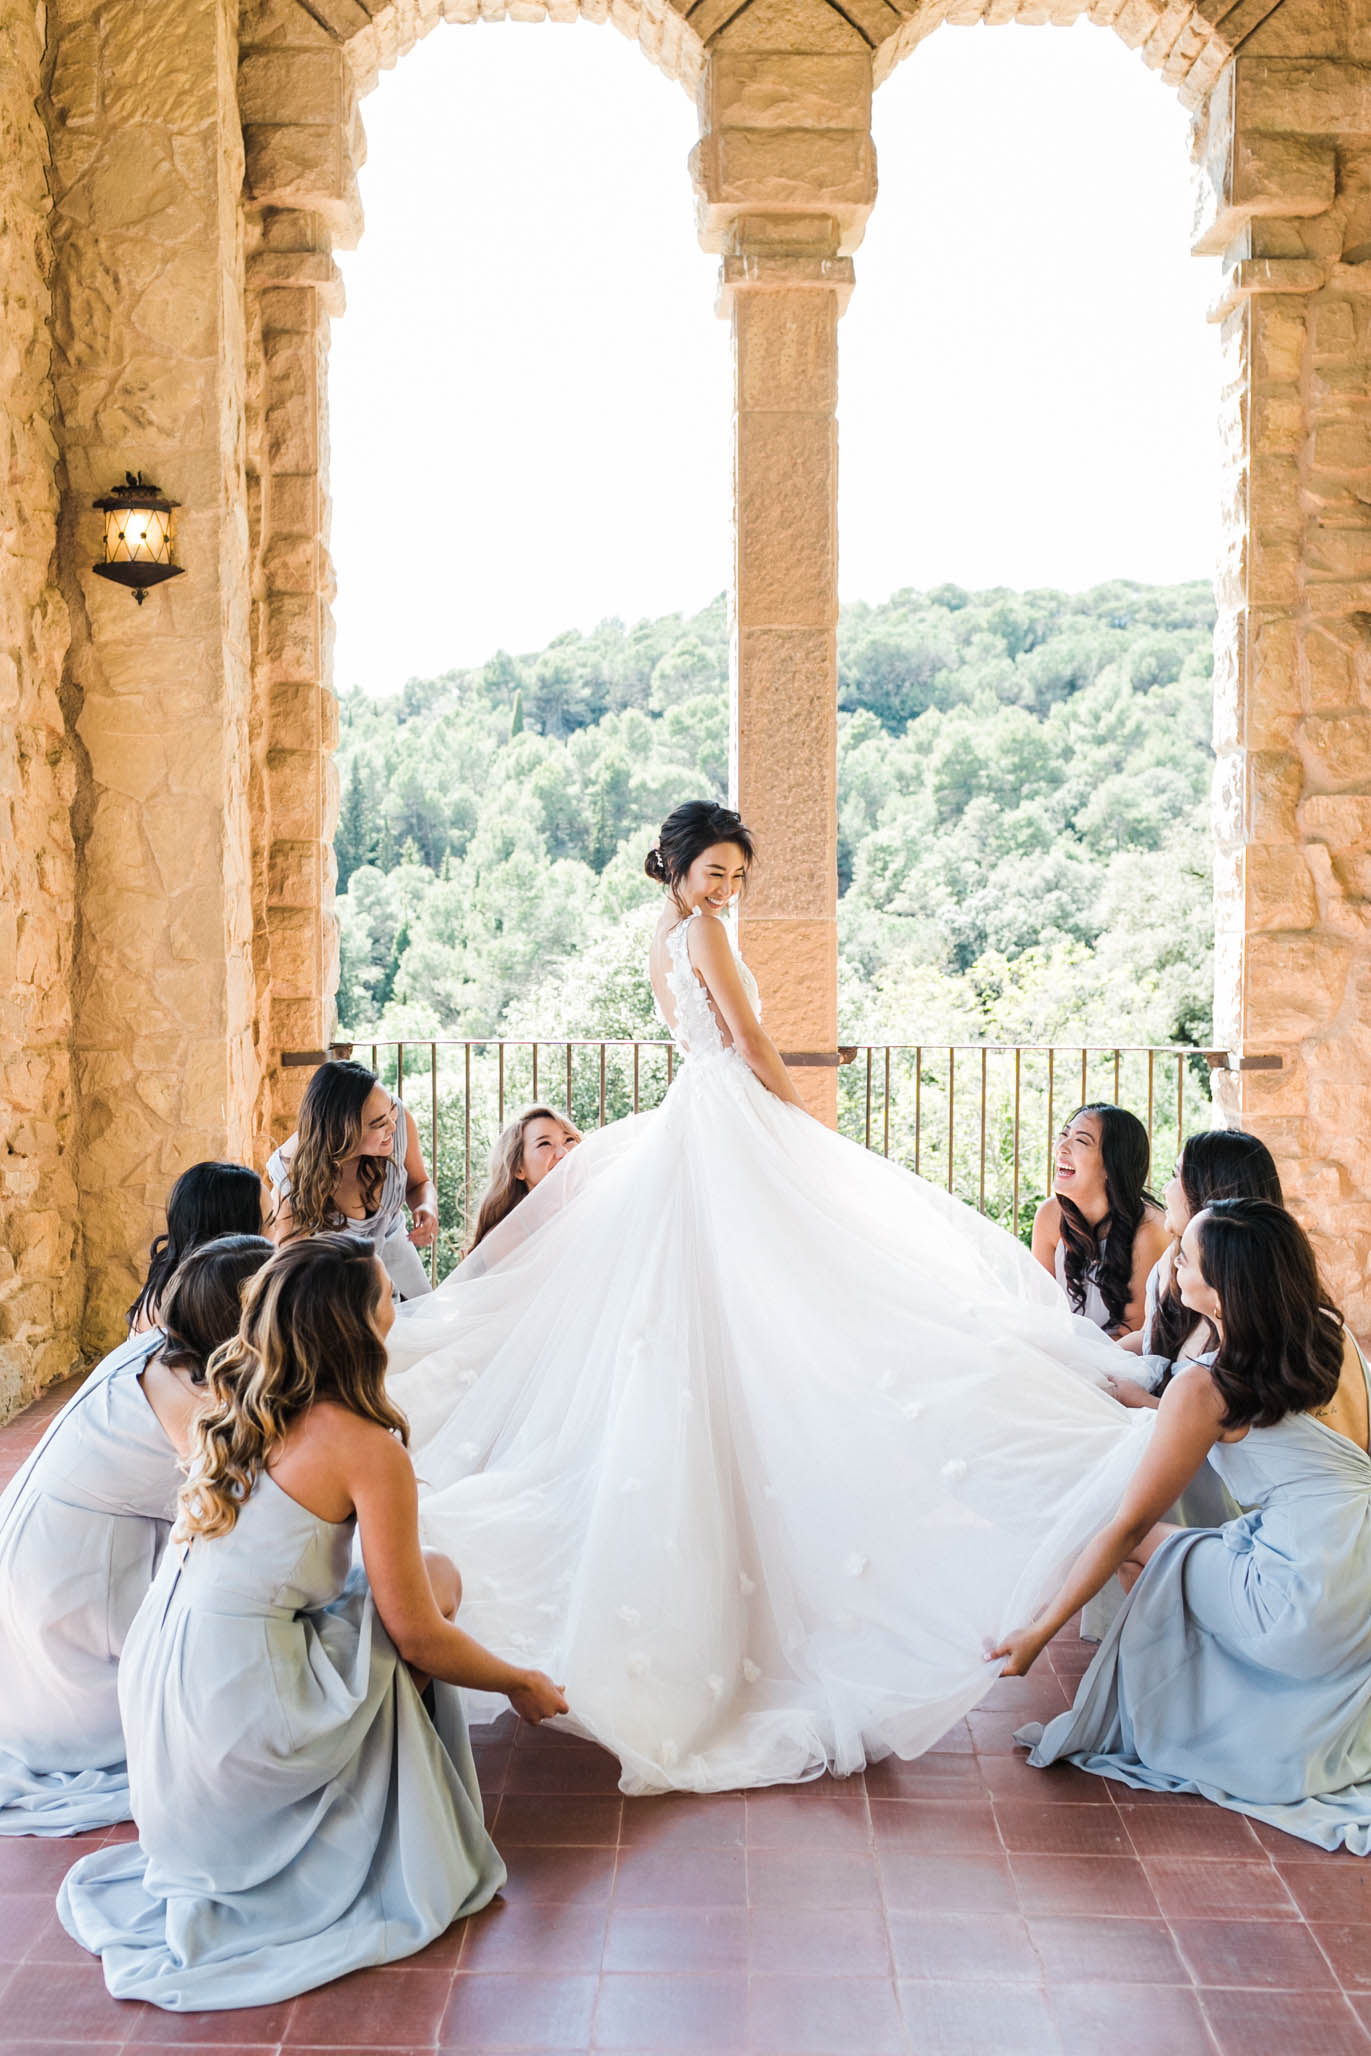 This is the inside of the iconic balcony/terrace I talked about earlier at La Baronia. How magical is every detail ? Every stone, every tile, ever scratch and mark tells its own story. And seeing Silvina in this dress with her best friends just really did it for me. I could not handle.